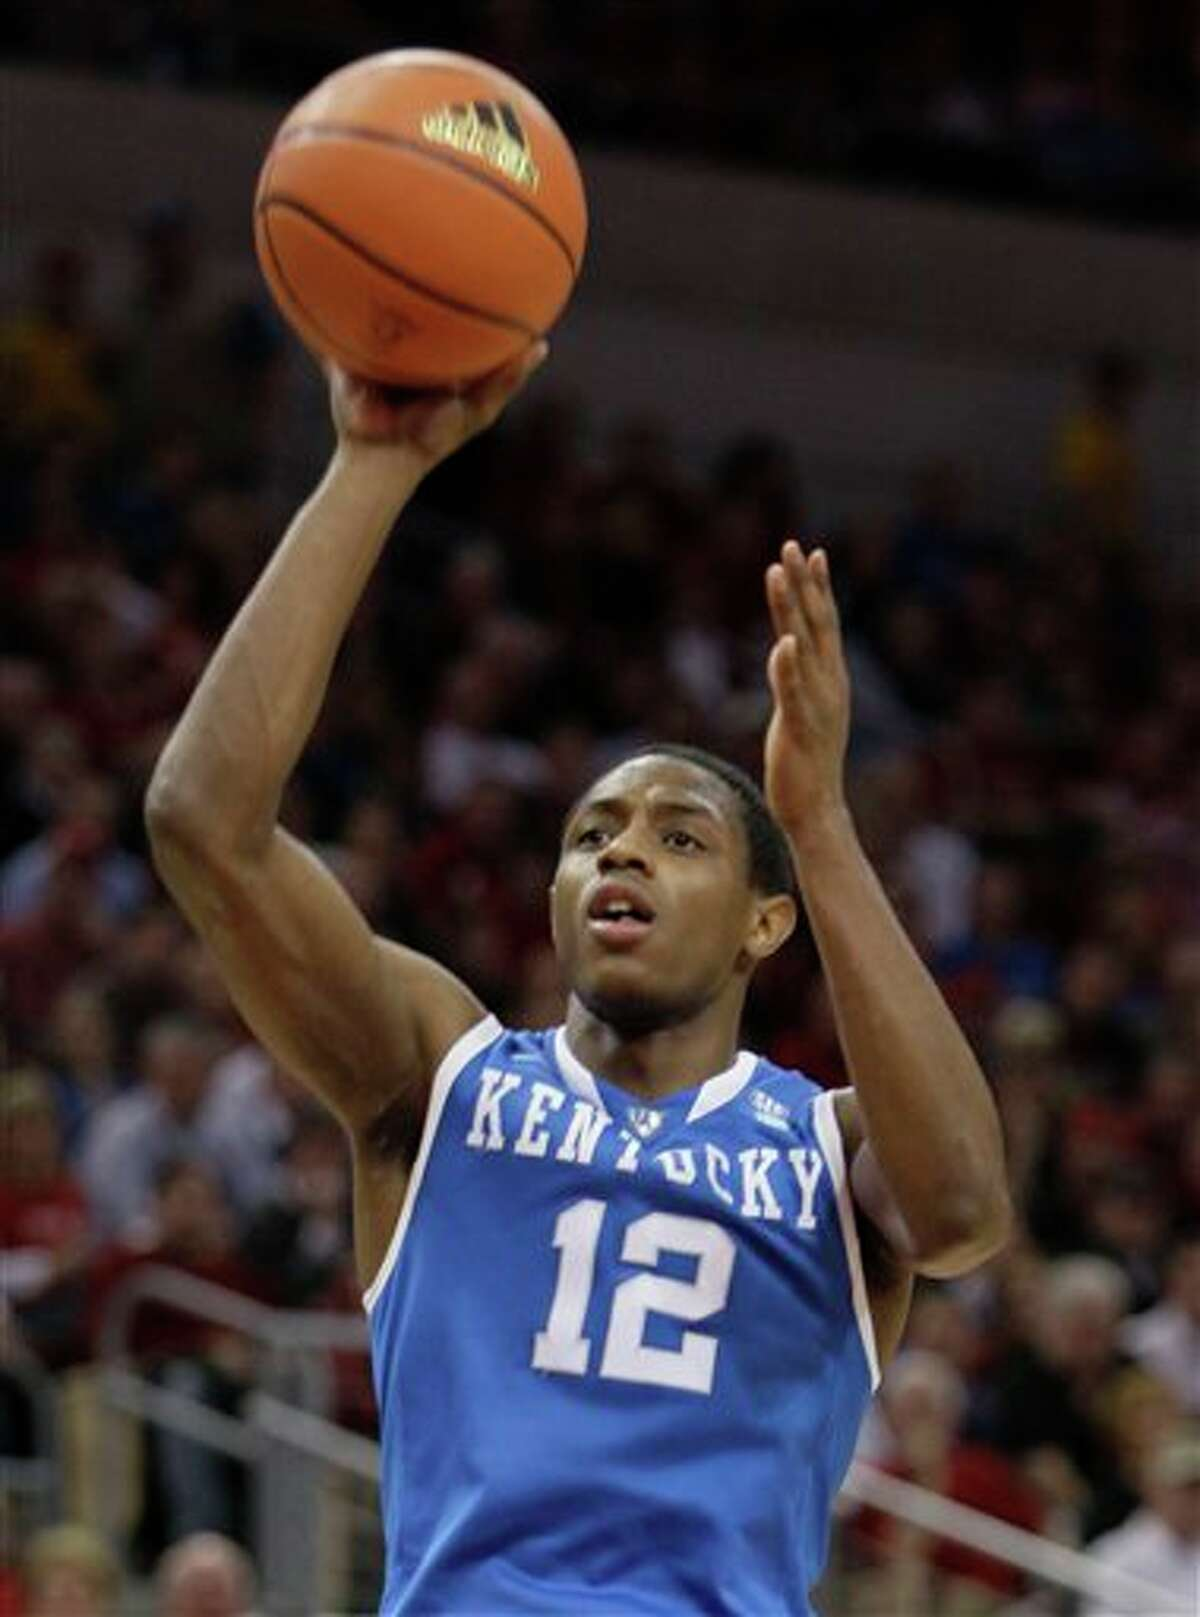 Kentucky's Brandon Knight shoots during the first half of an NCAA college basketball game in Louisville, Ky. All Knight did as a freshman was produce knock-out shots that propelled a young Kentucky team into the Final Four. Knight figures to be sitting at No. 3 when the Utah Jazz pick in Thursday's NBA draft. (AP Photo/Ed Reinke, File) 2011 NBA draft